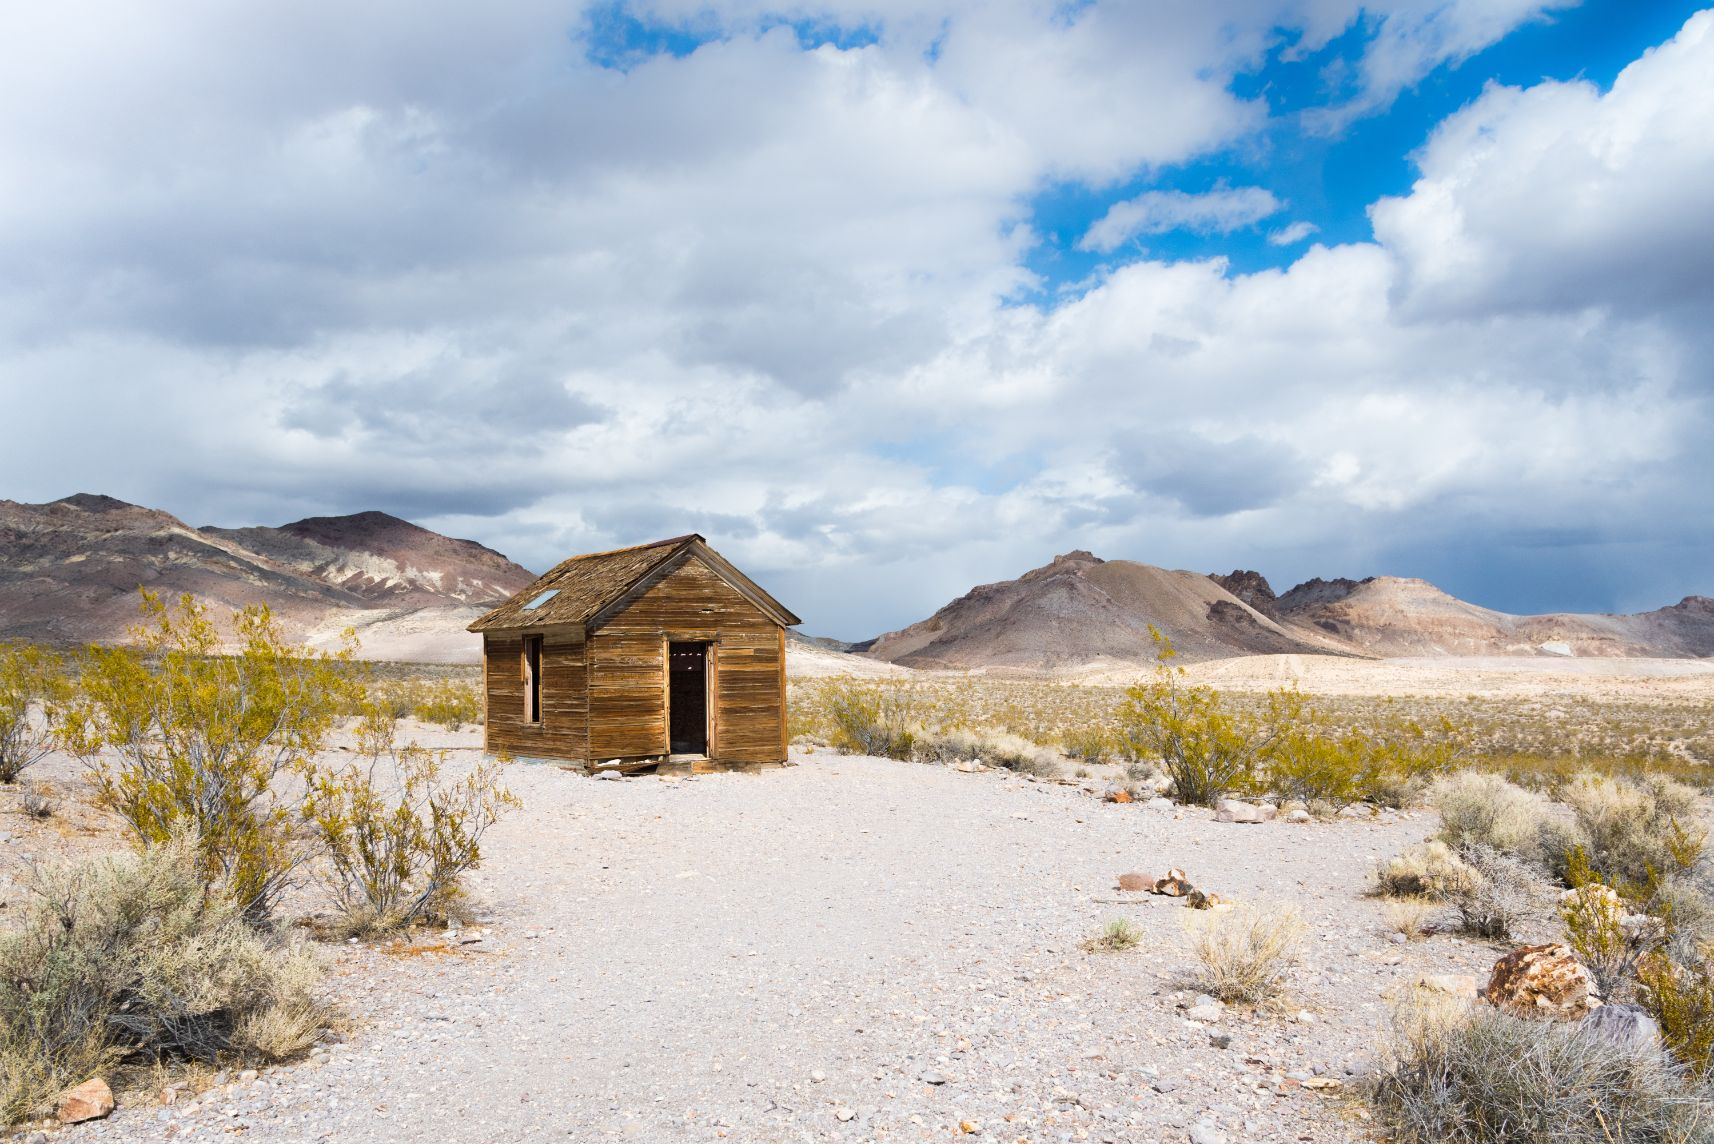 abandoned cabin in the Rhyolite ghost town in the Nevada desert